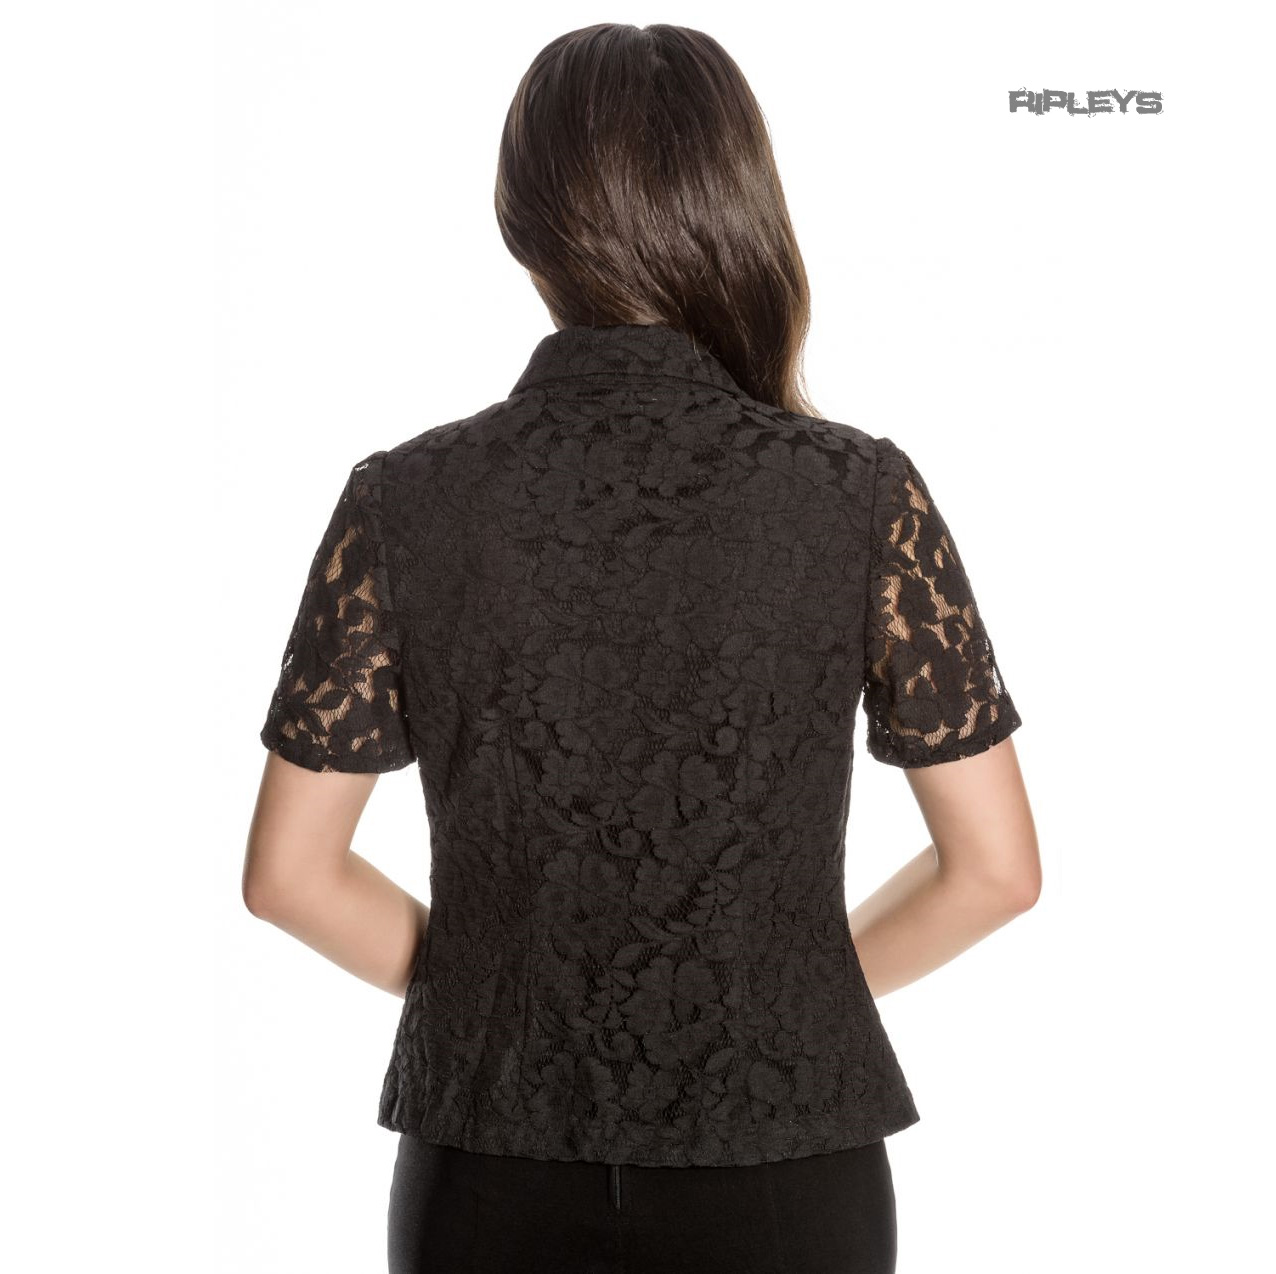 Hell-Bunny-Spin-Doctor-Vampire-Gothic-Shirt-Top-ROWENA-Lace-Blouse-All-Sizes Indexbild 4